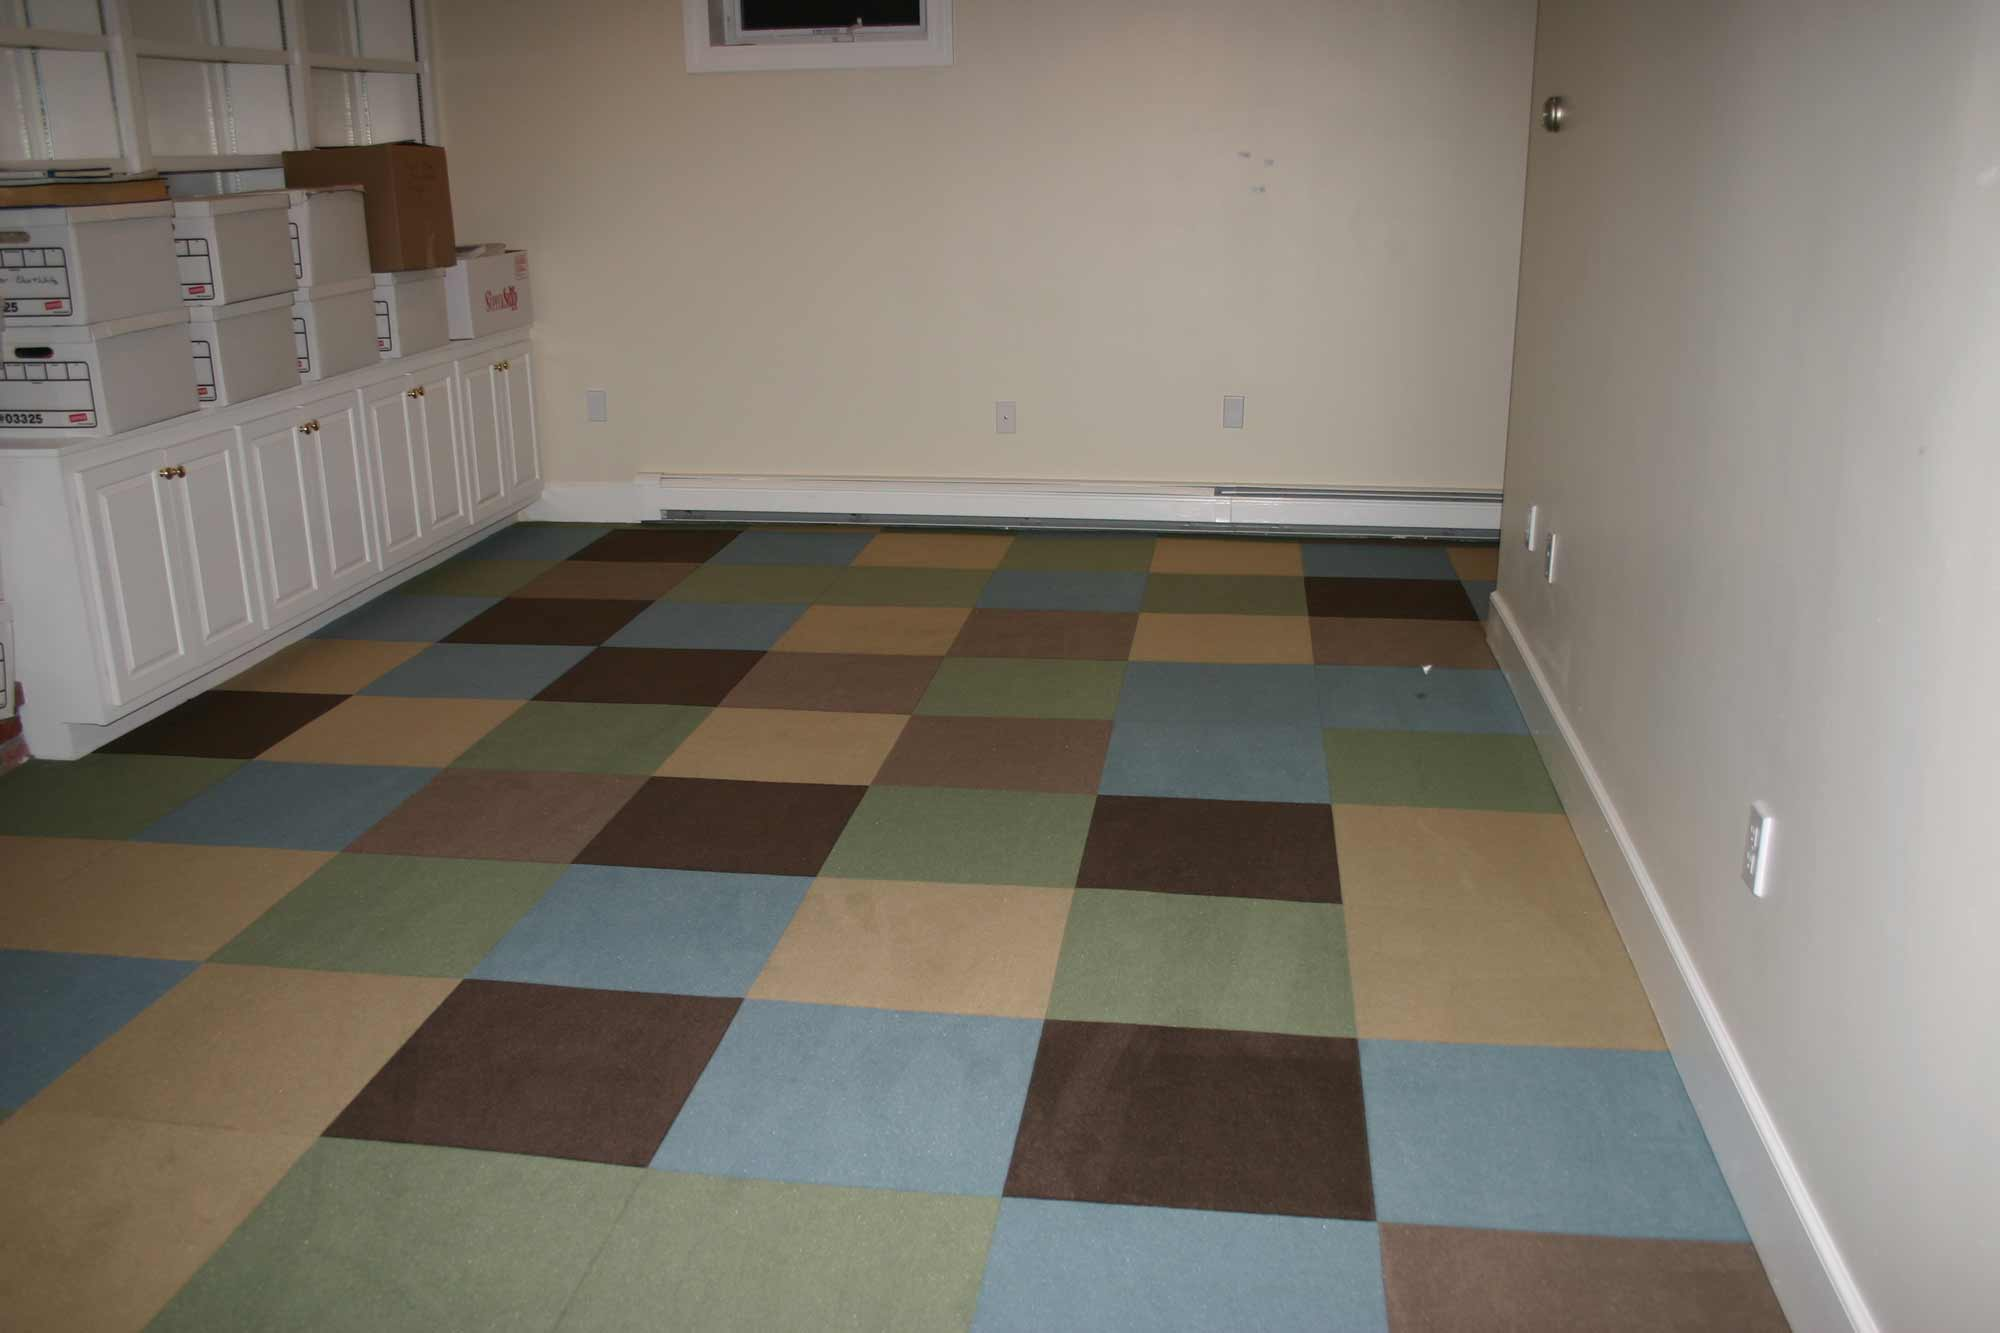 Bring basement floor covering more vivid homesfeed for Basement floor covering ideas